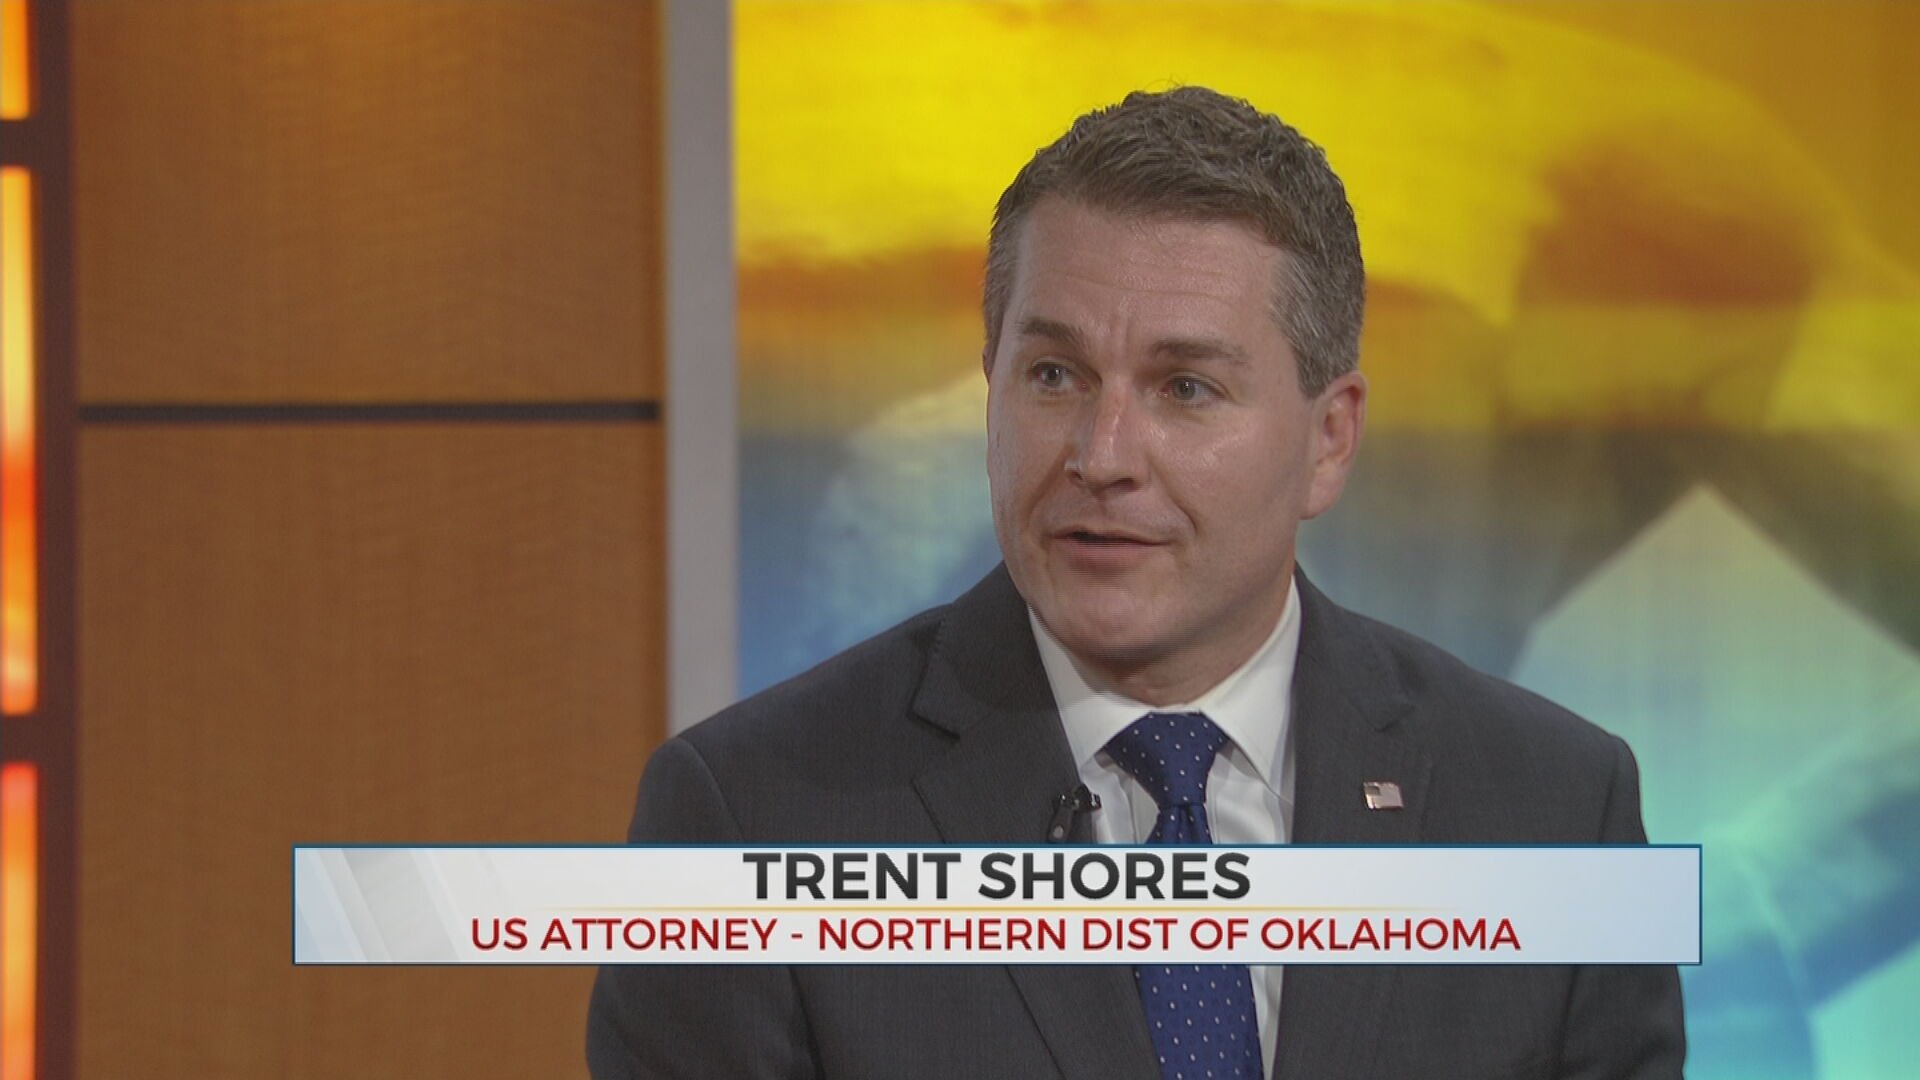 US Attorney Shores Speaks On Task Force To Protect Native American Children